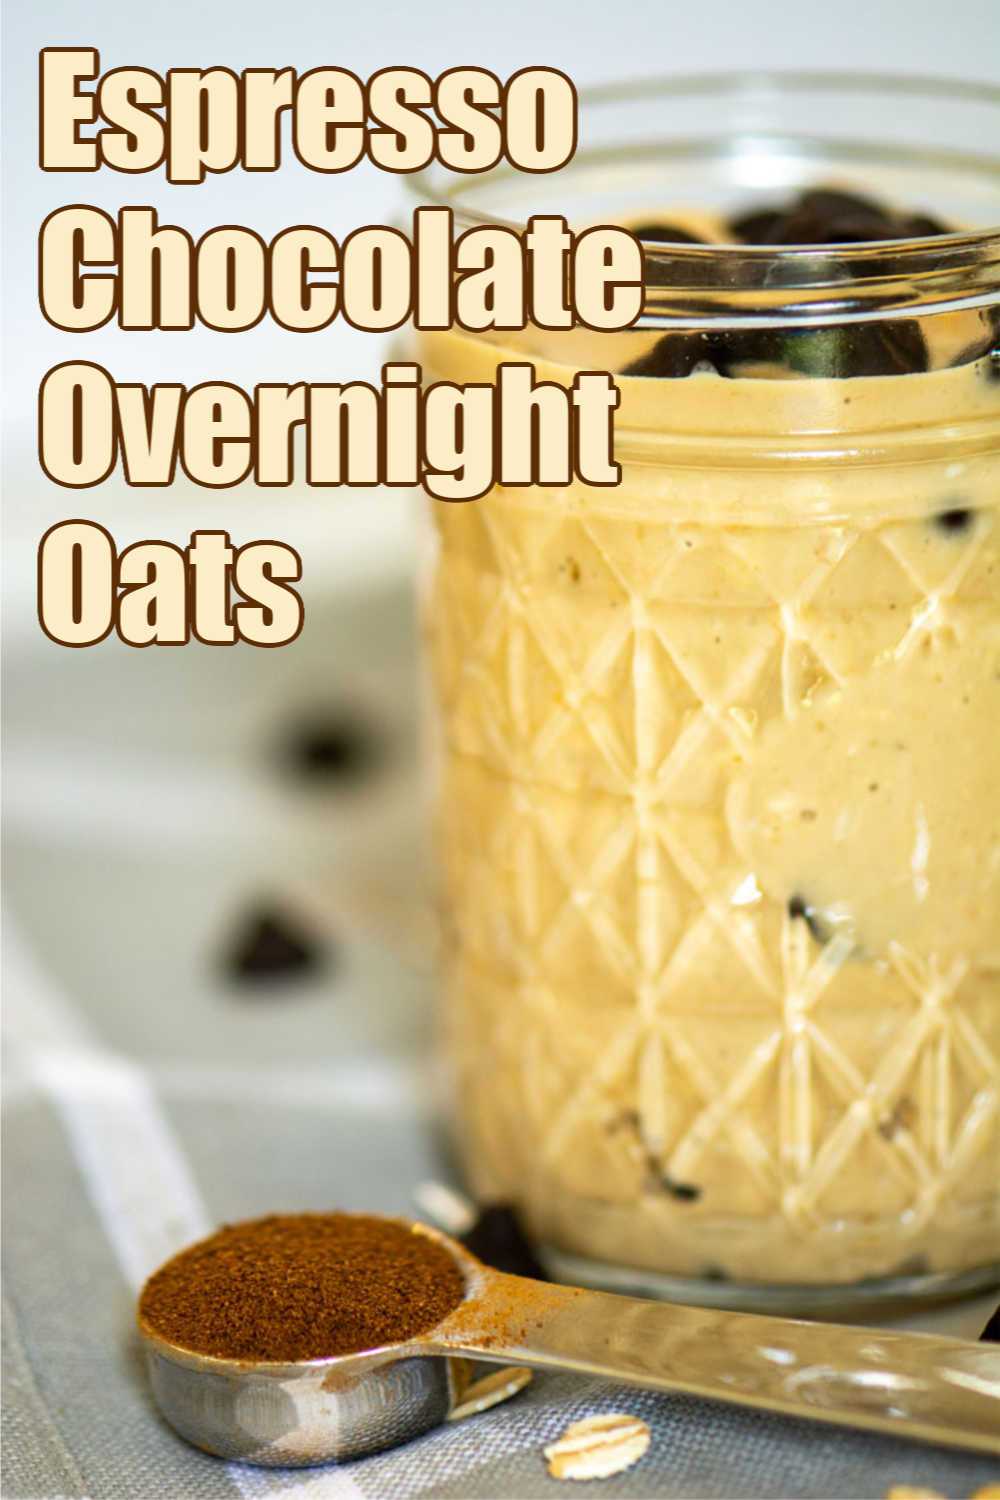 Espresso Chocolate Overnight Oats {WW 4 Purple, 8 Blue, 9 Green, Vegetarian, Gluten Free}